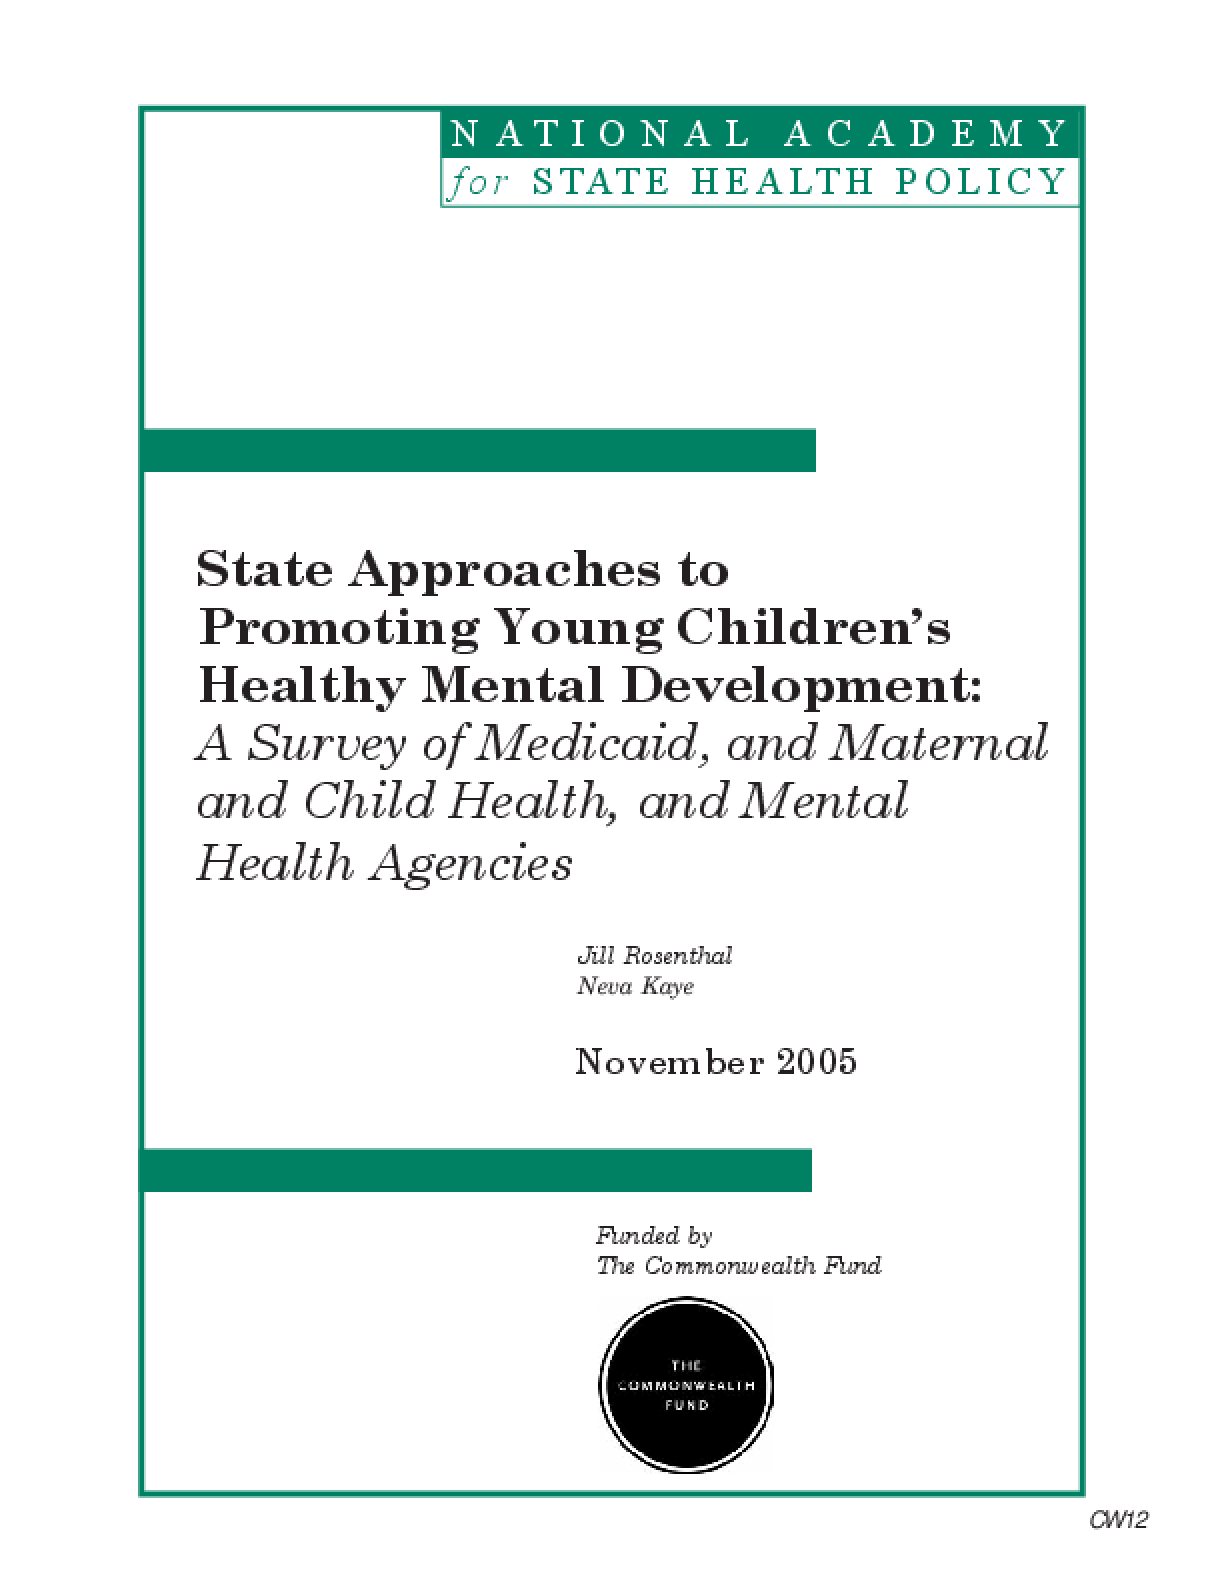 State Approaches to Promoting Young Children's Healthy Mental Development: A Survey of Medicaid, Maternal and Child Health, and Mental Health Agencies